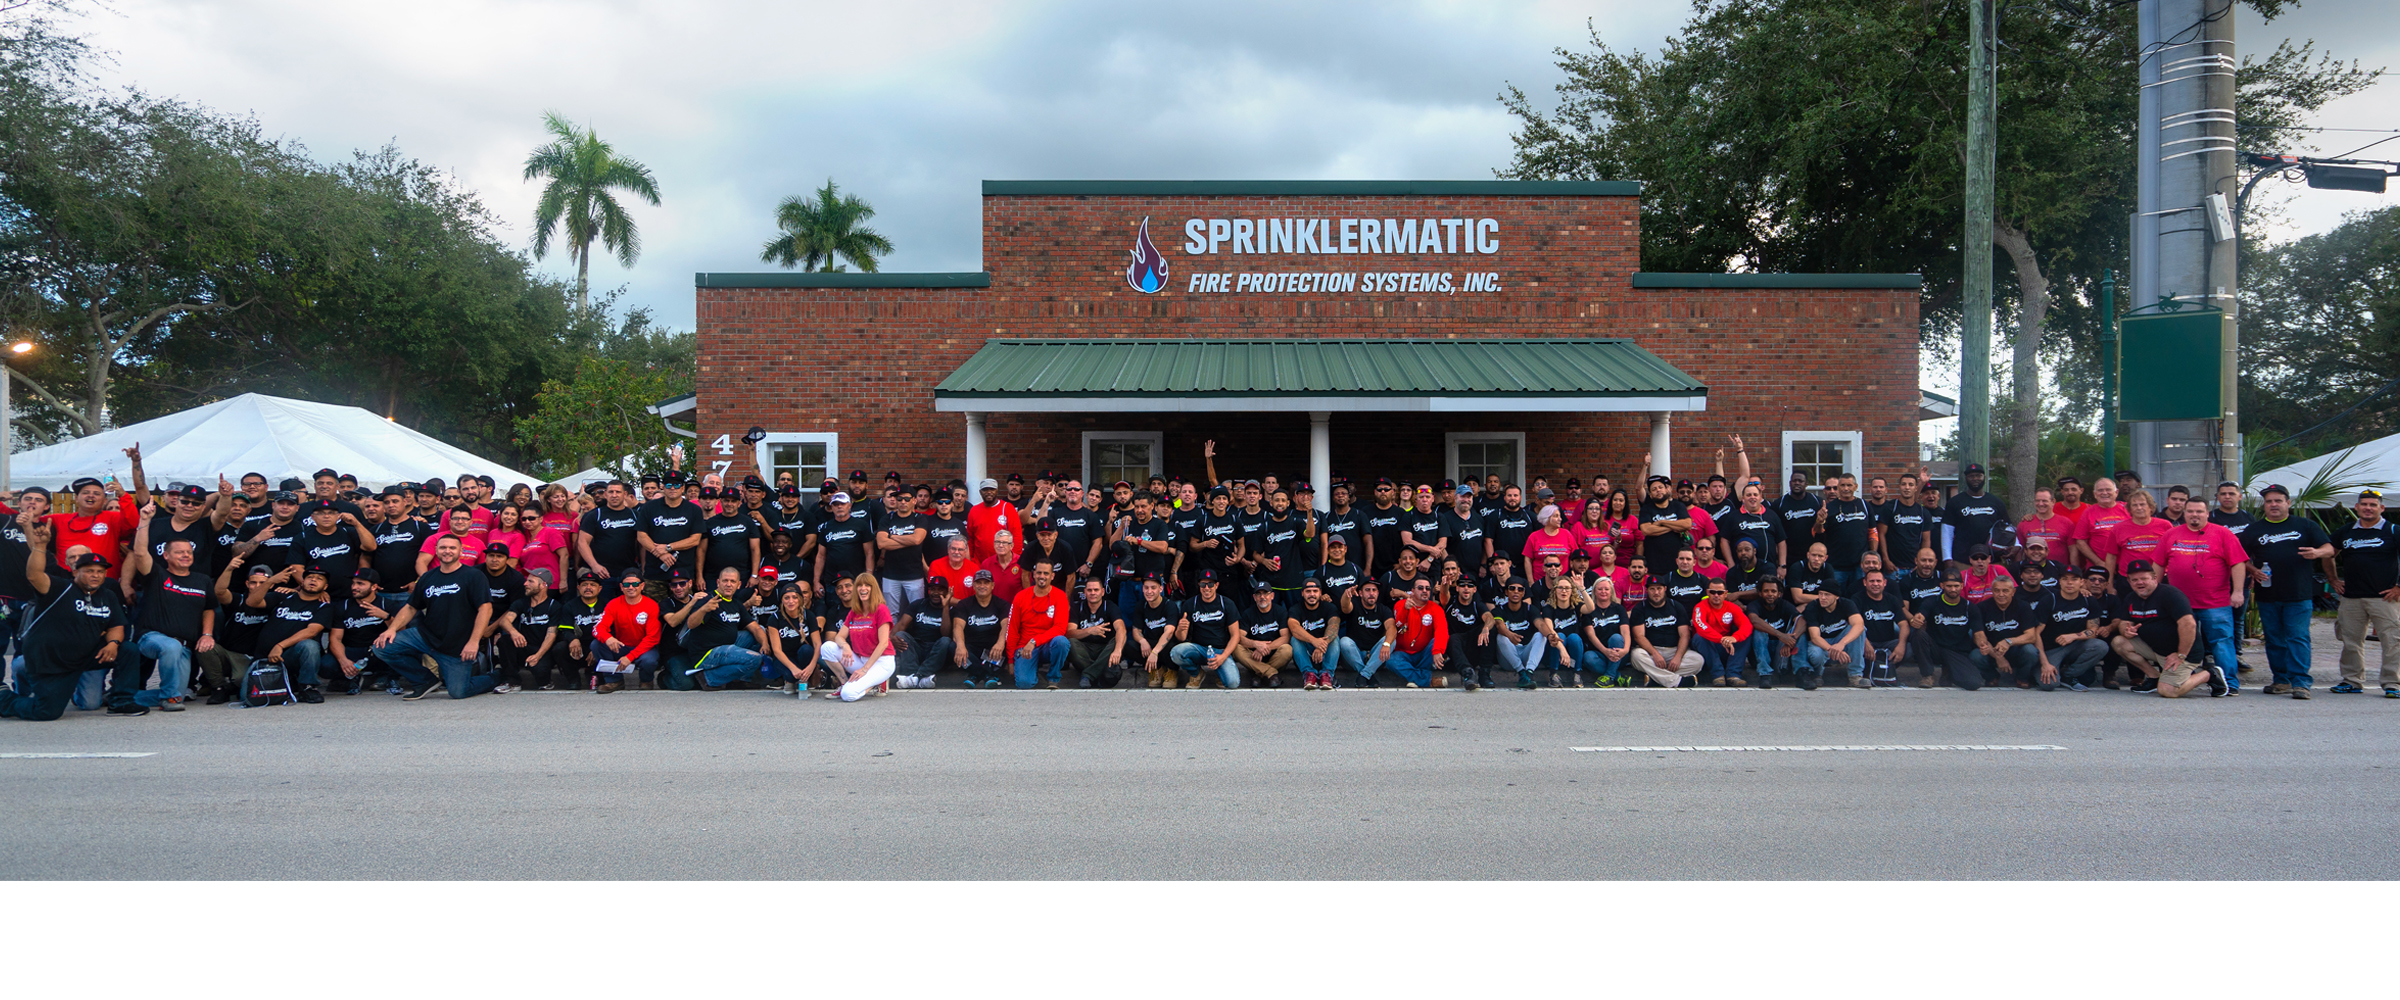 Sprinklermatic Fire Protection Systems Inc  | Florida Fire